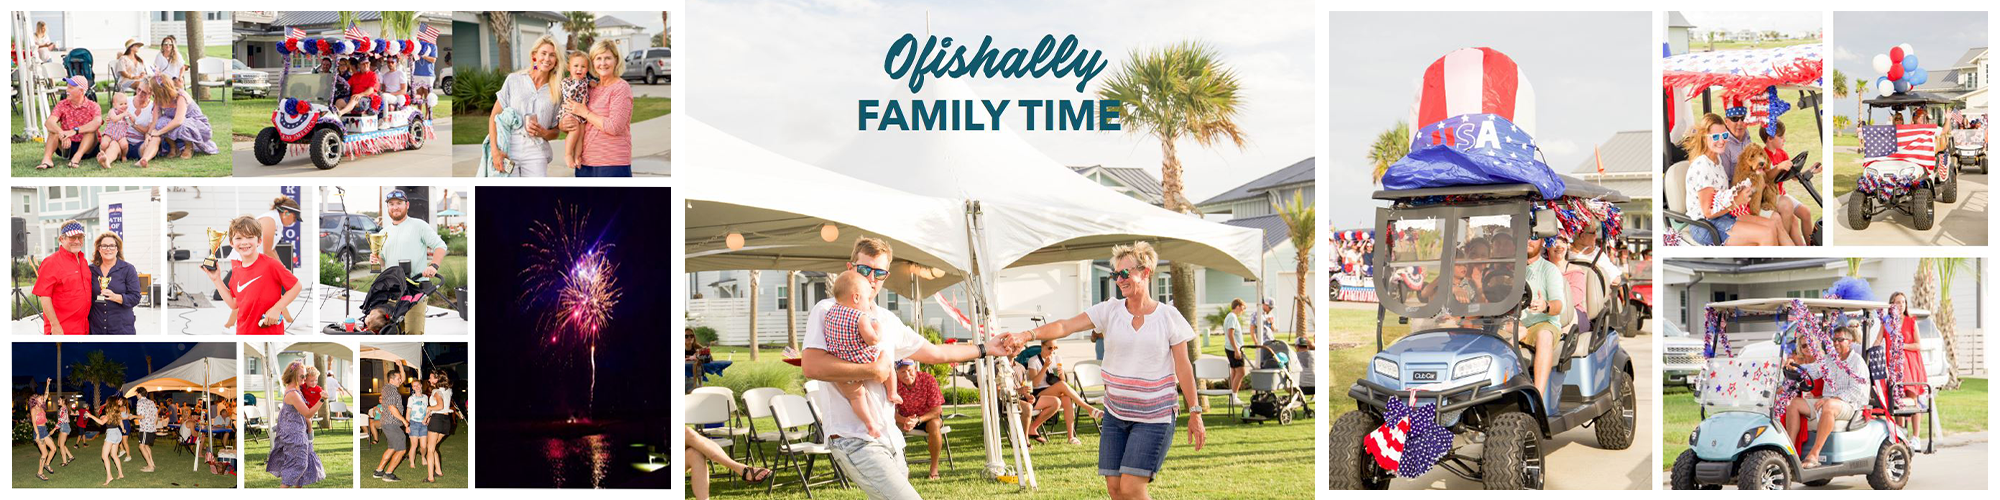 Ofishally Family Time – July 4th Weekend Recap